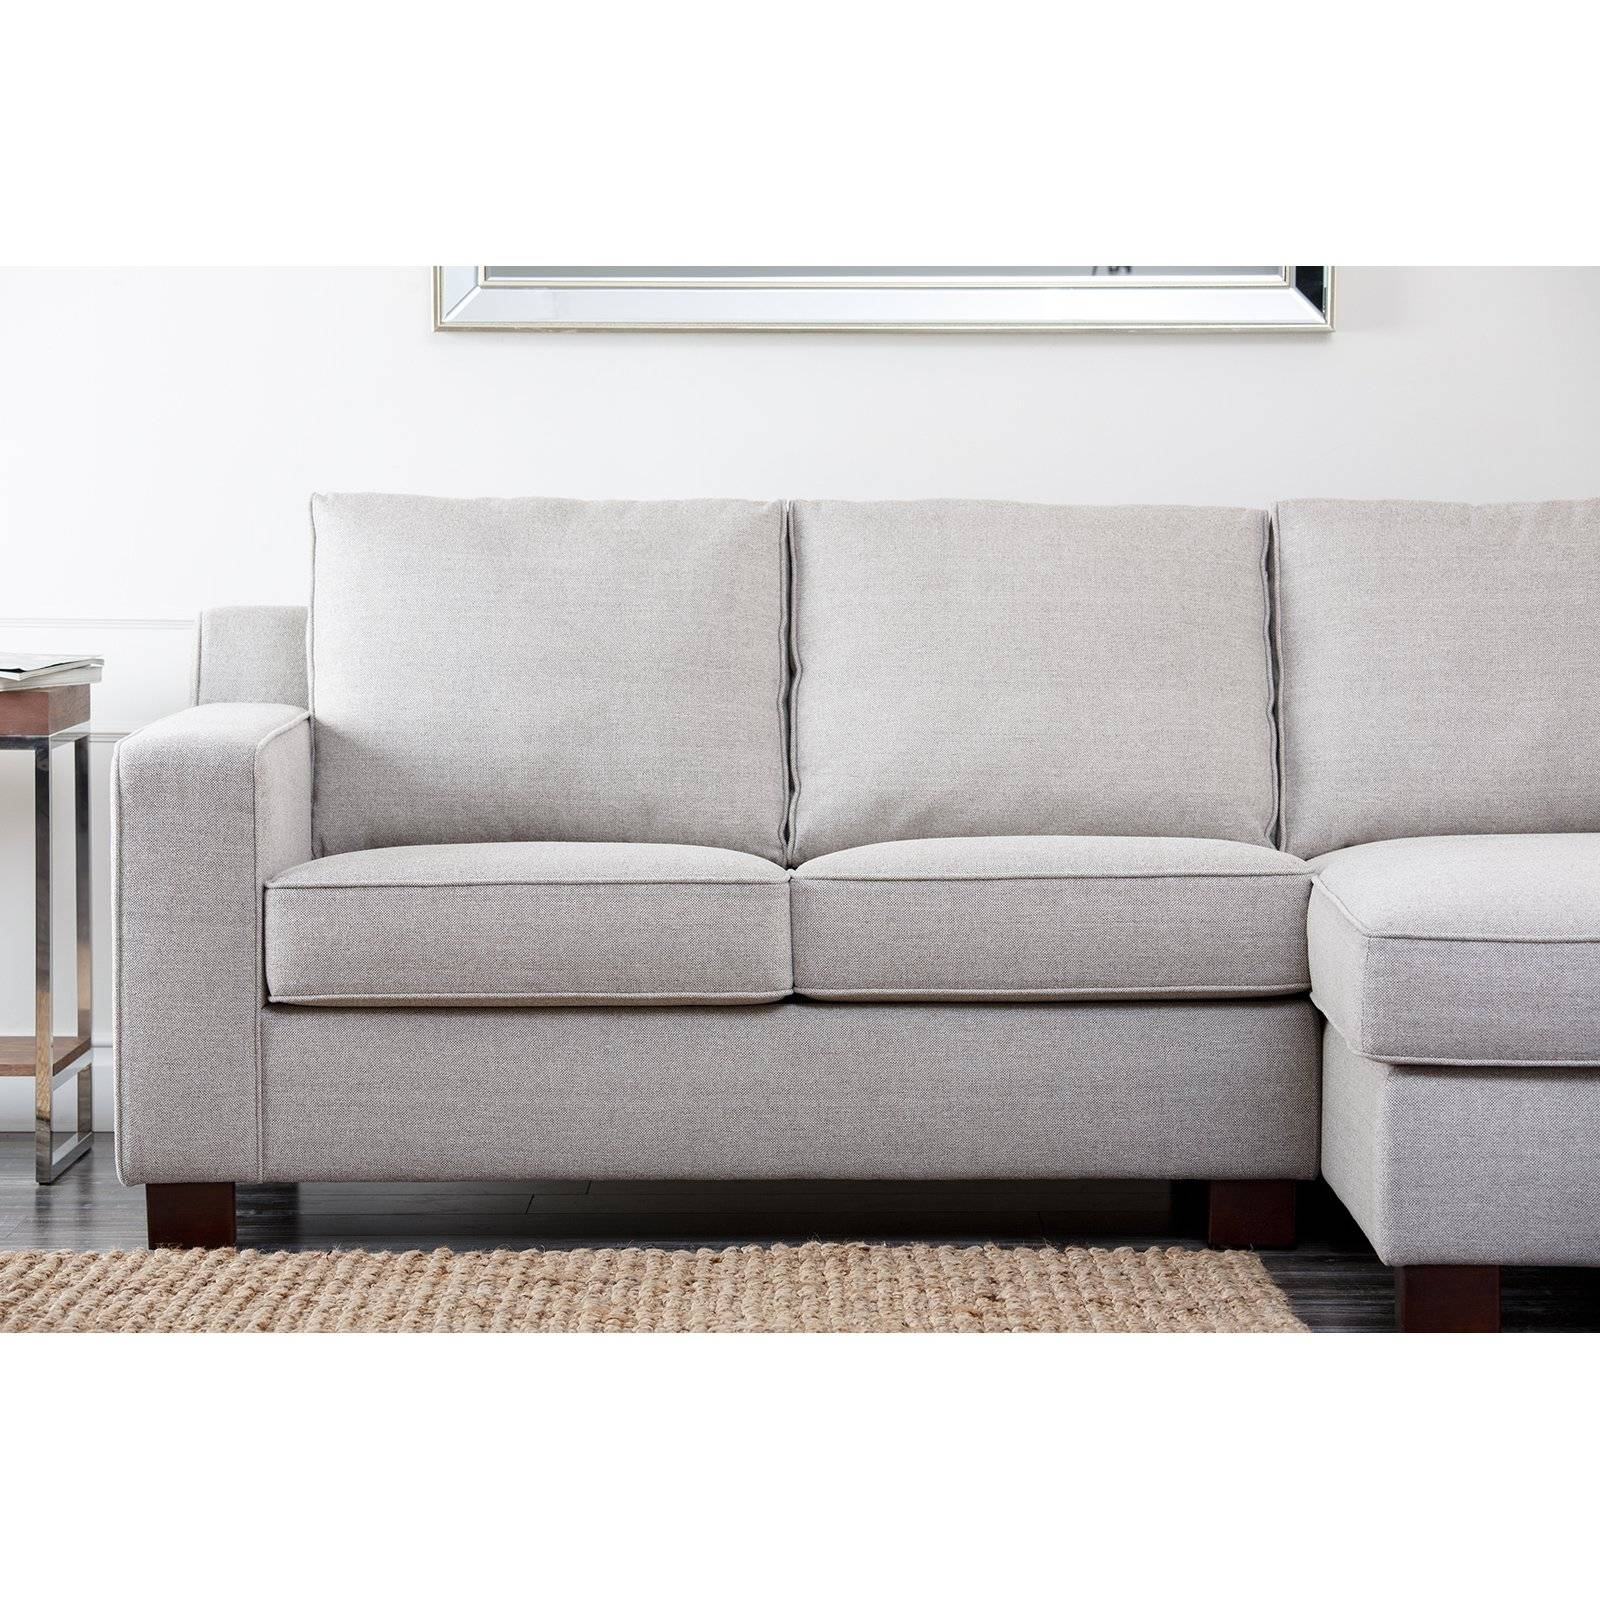 Abbyson Regina Sectional Sofa - Gray | Hayneedle intended for Abbyson Living Sectional Sofas (Image 4 of 15)